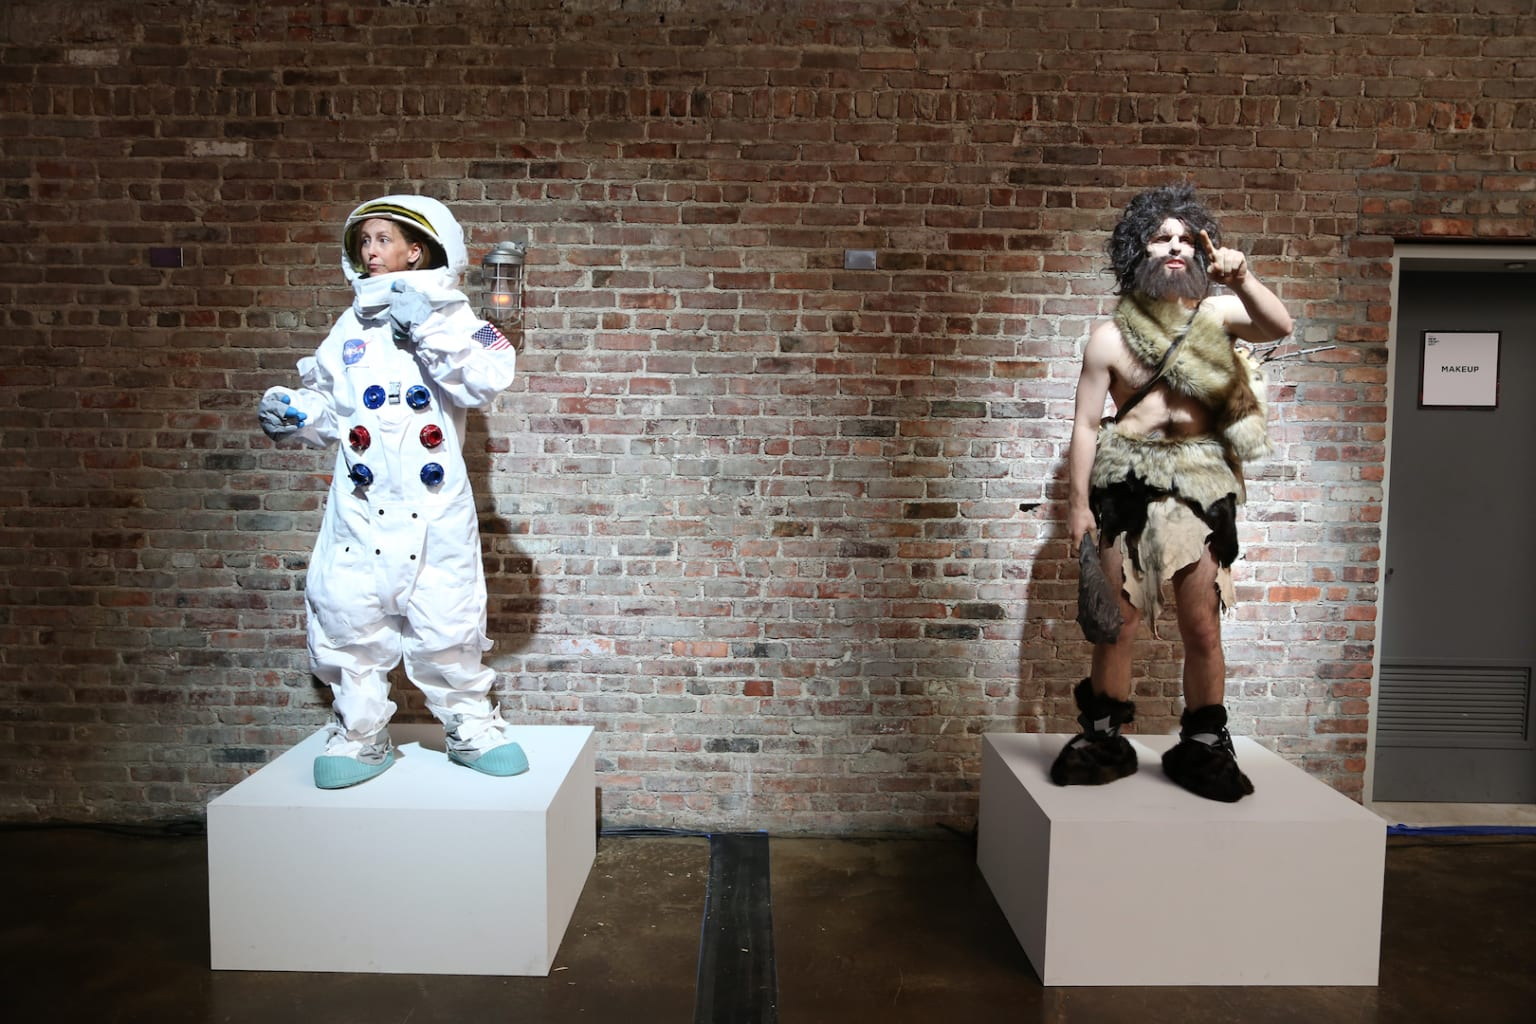 The Caveman and the Astronaut